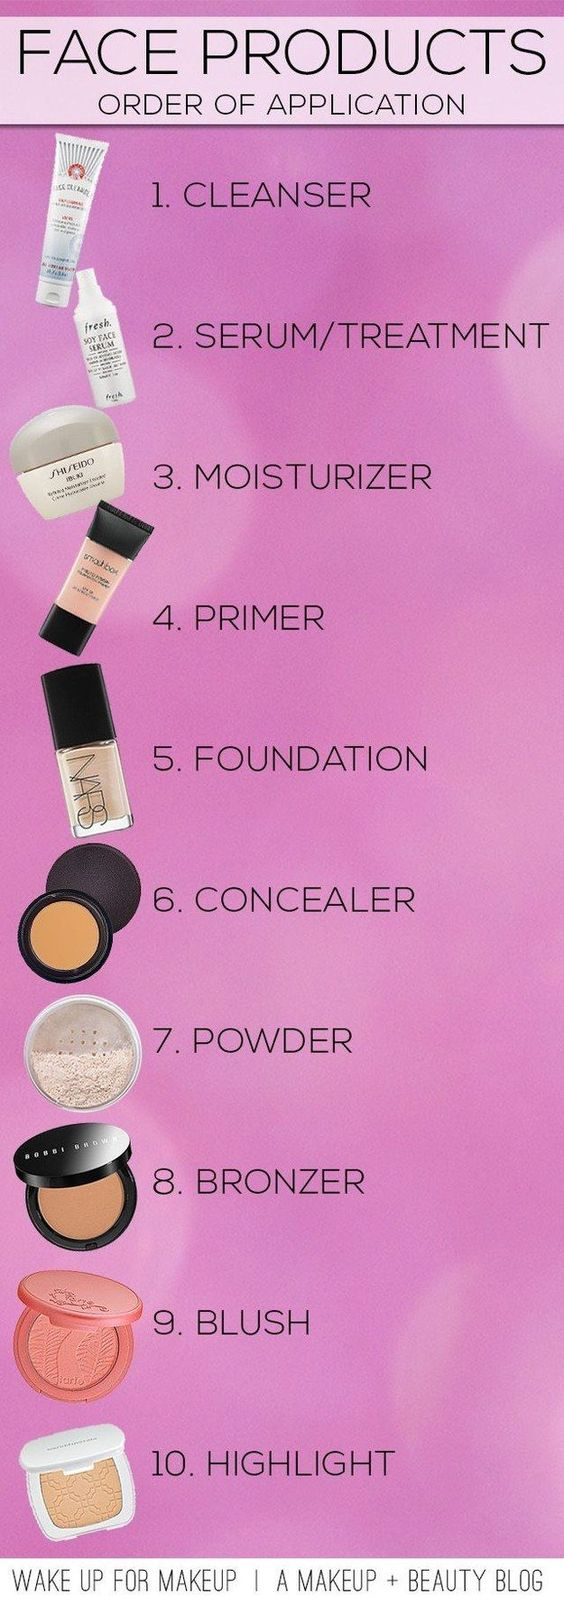 27-Charts-That-Will-Help-You-Make-Sense-Of-Makeup: